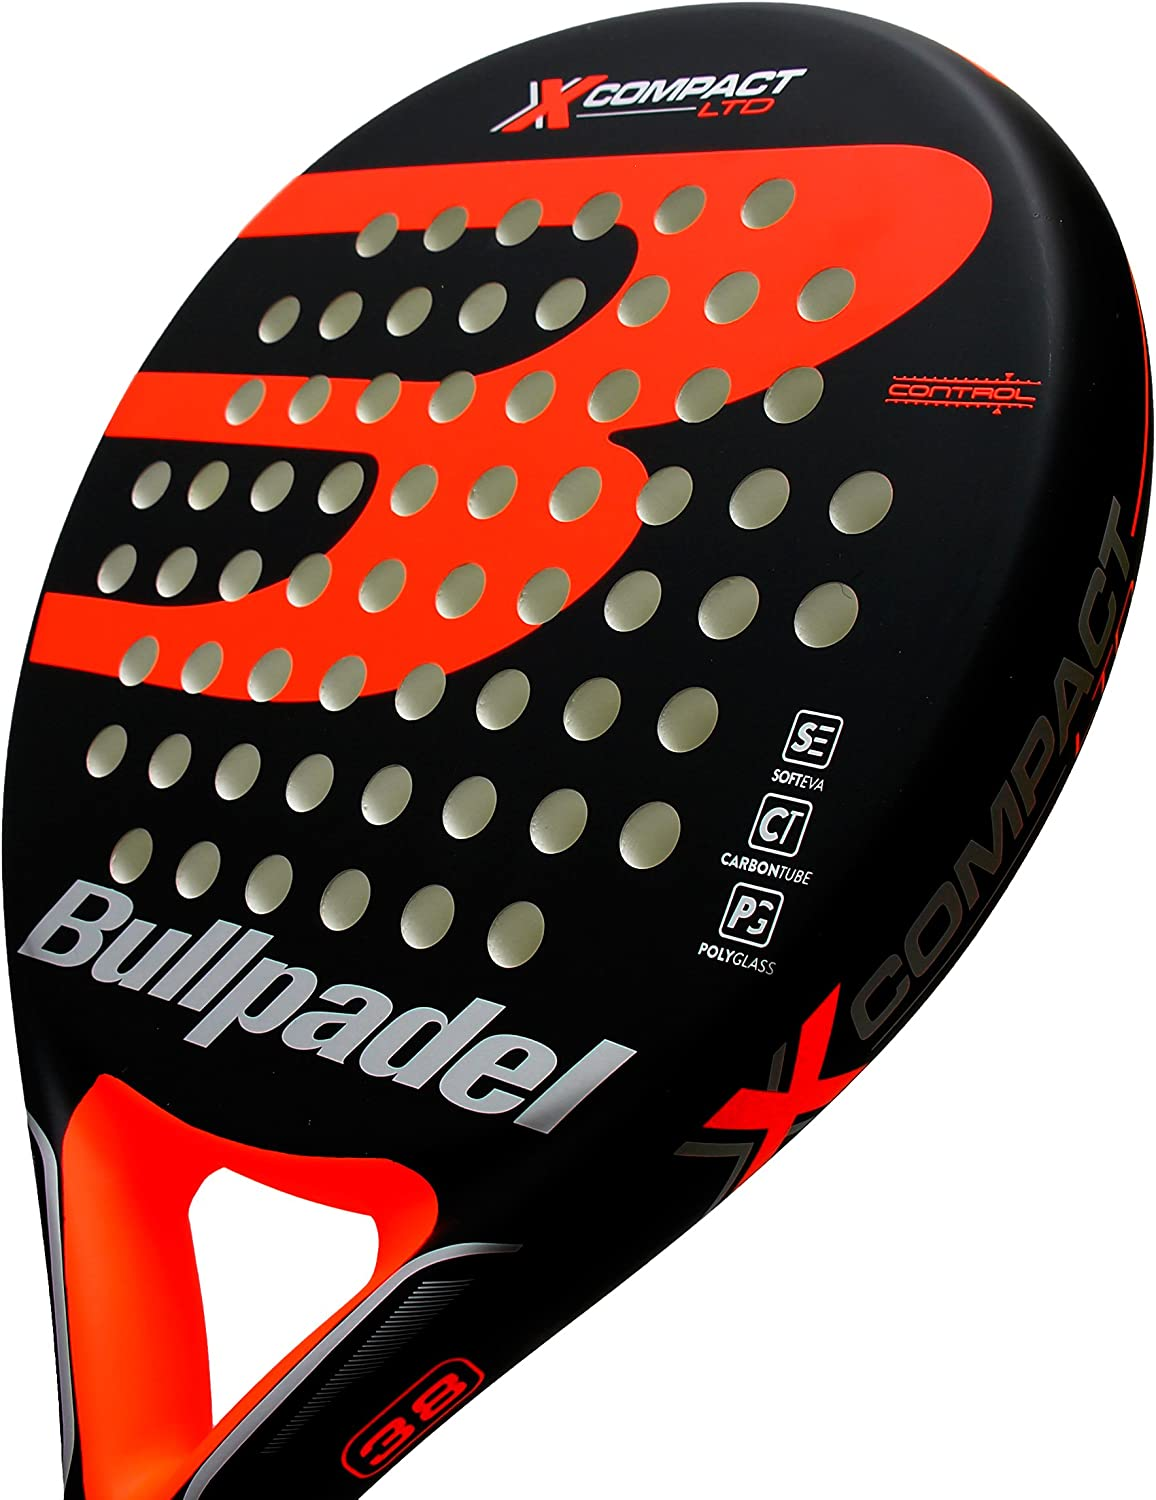 Pala de pádel Bullpadel X-Compact LTD Orange: Amazon.es: Deportes ...